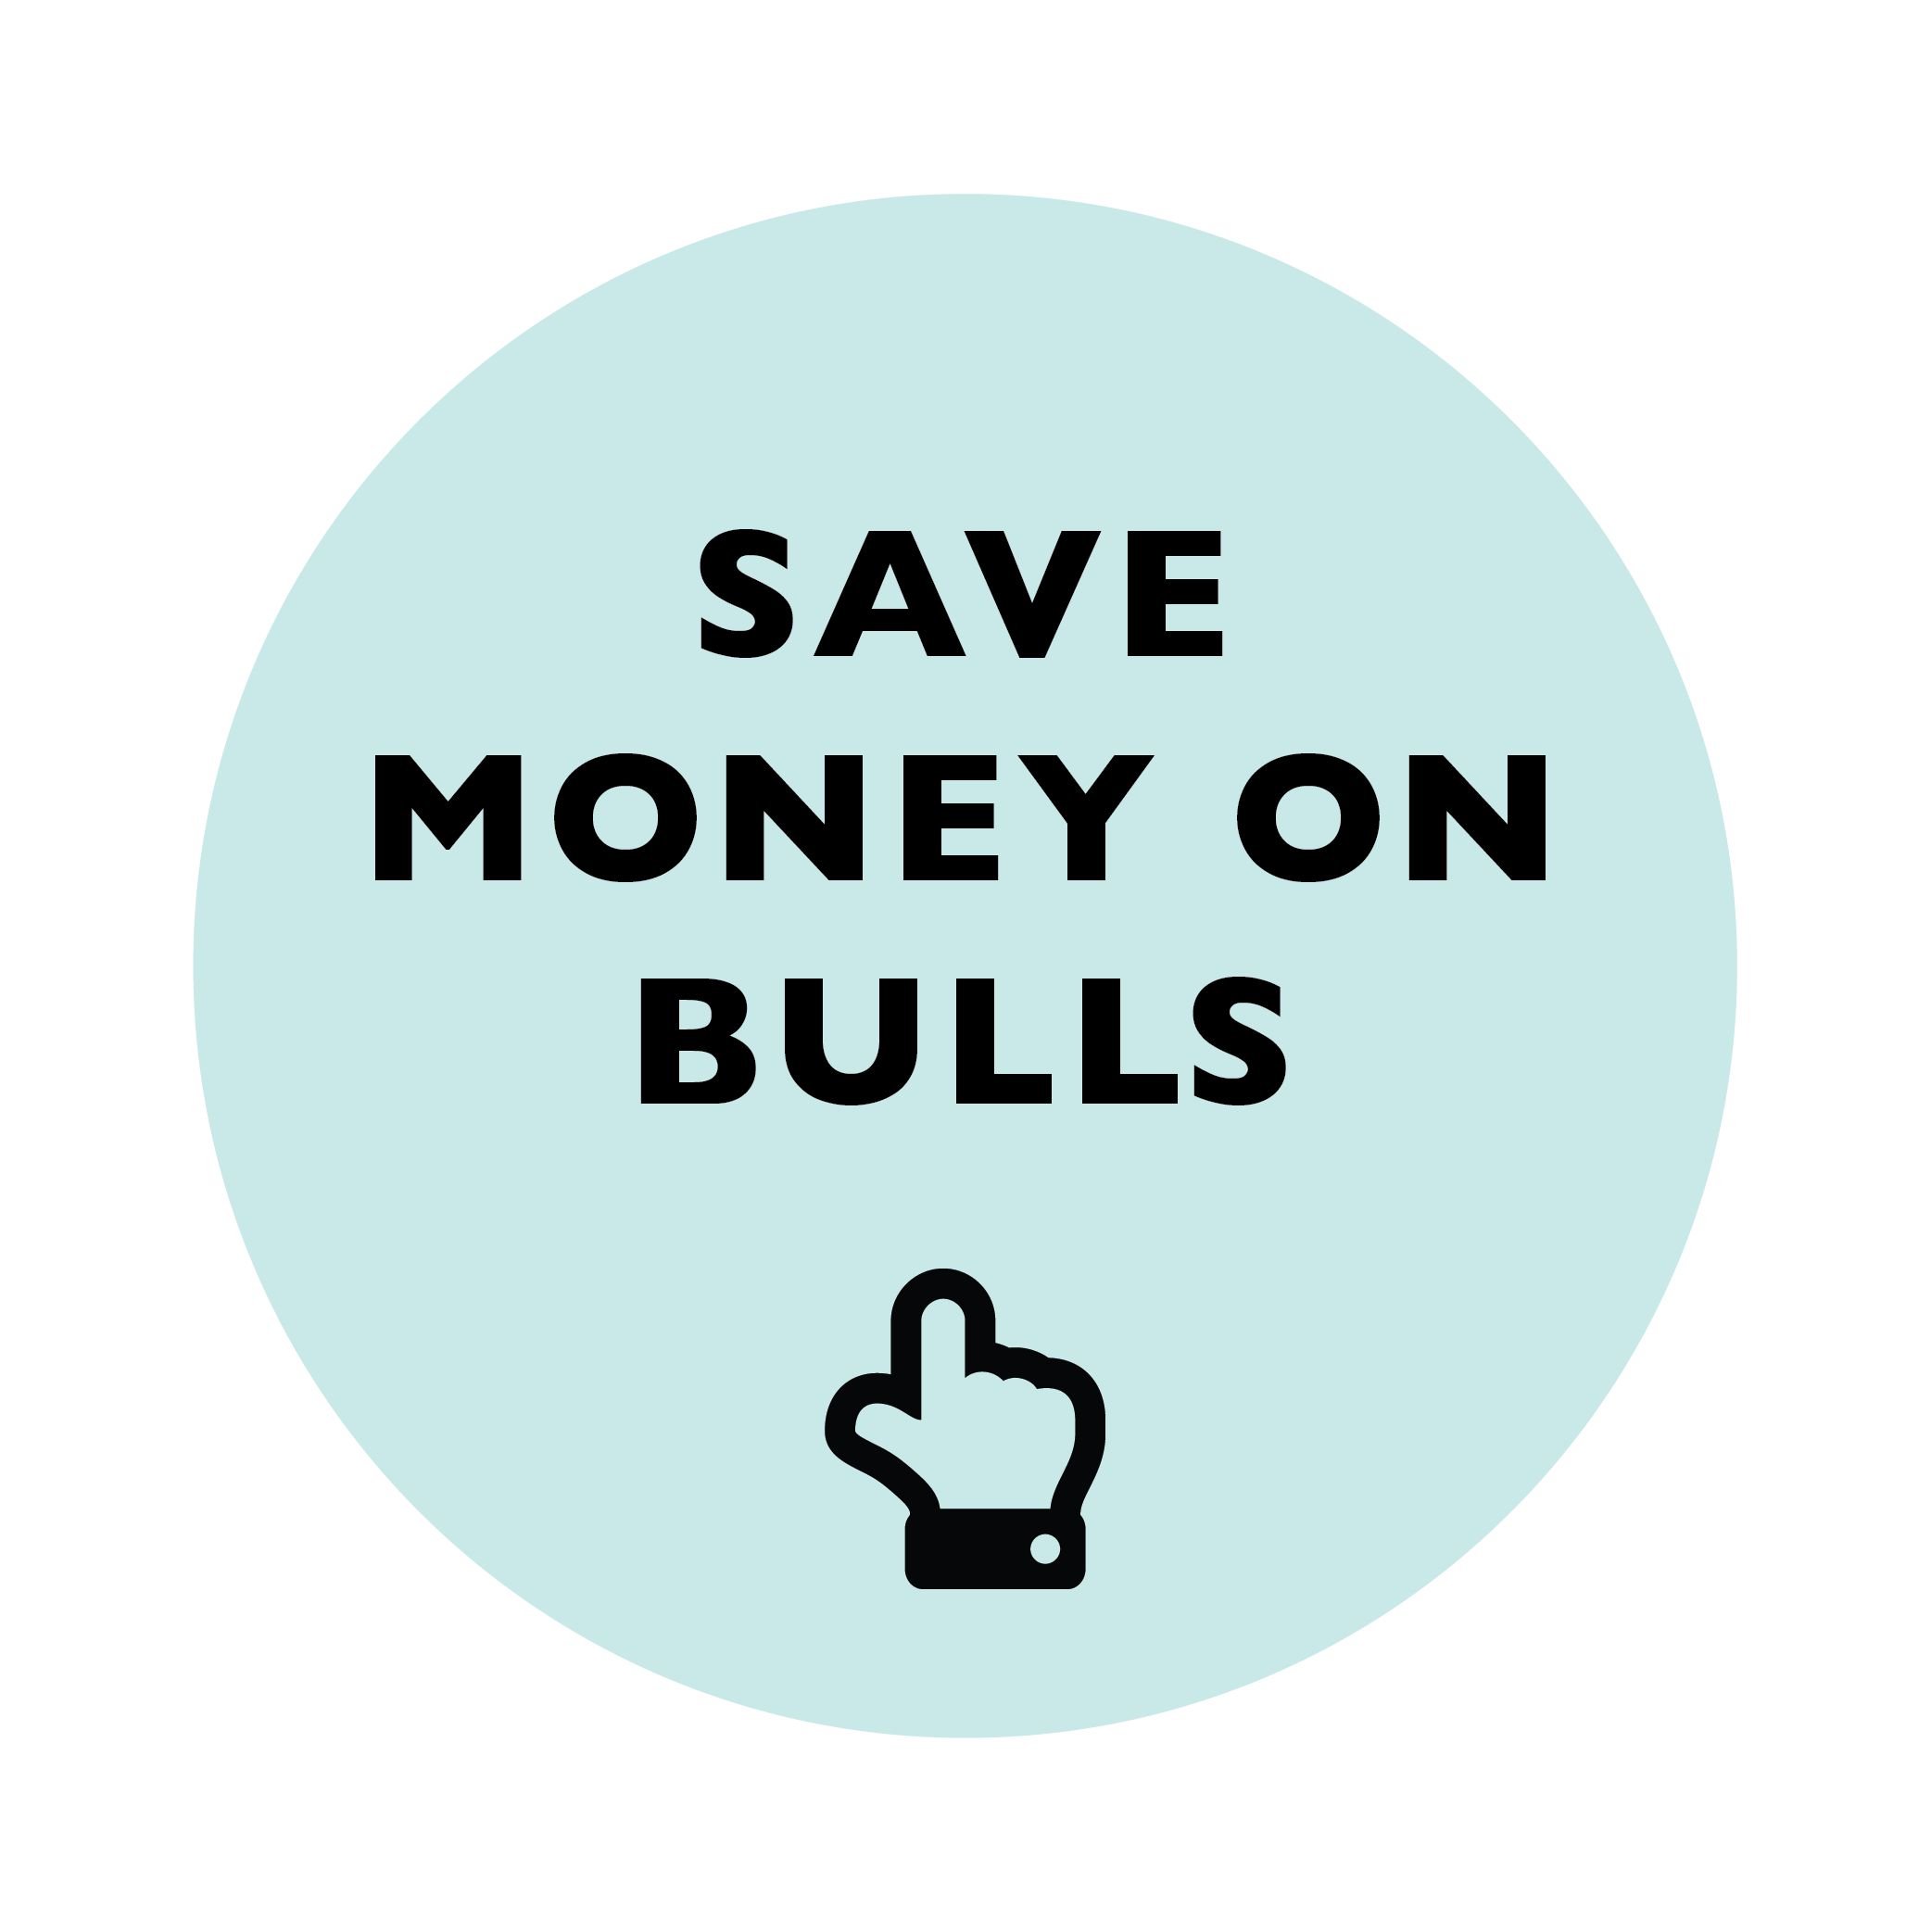 Save Money on Bulls